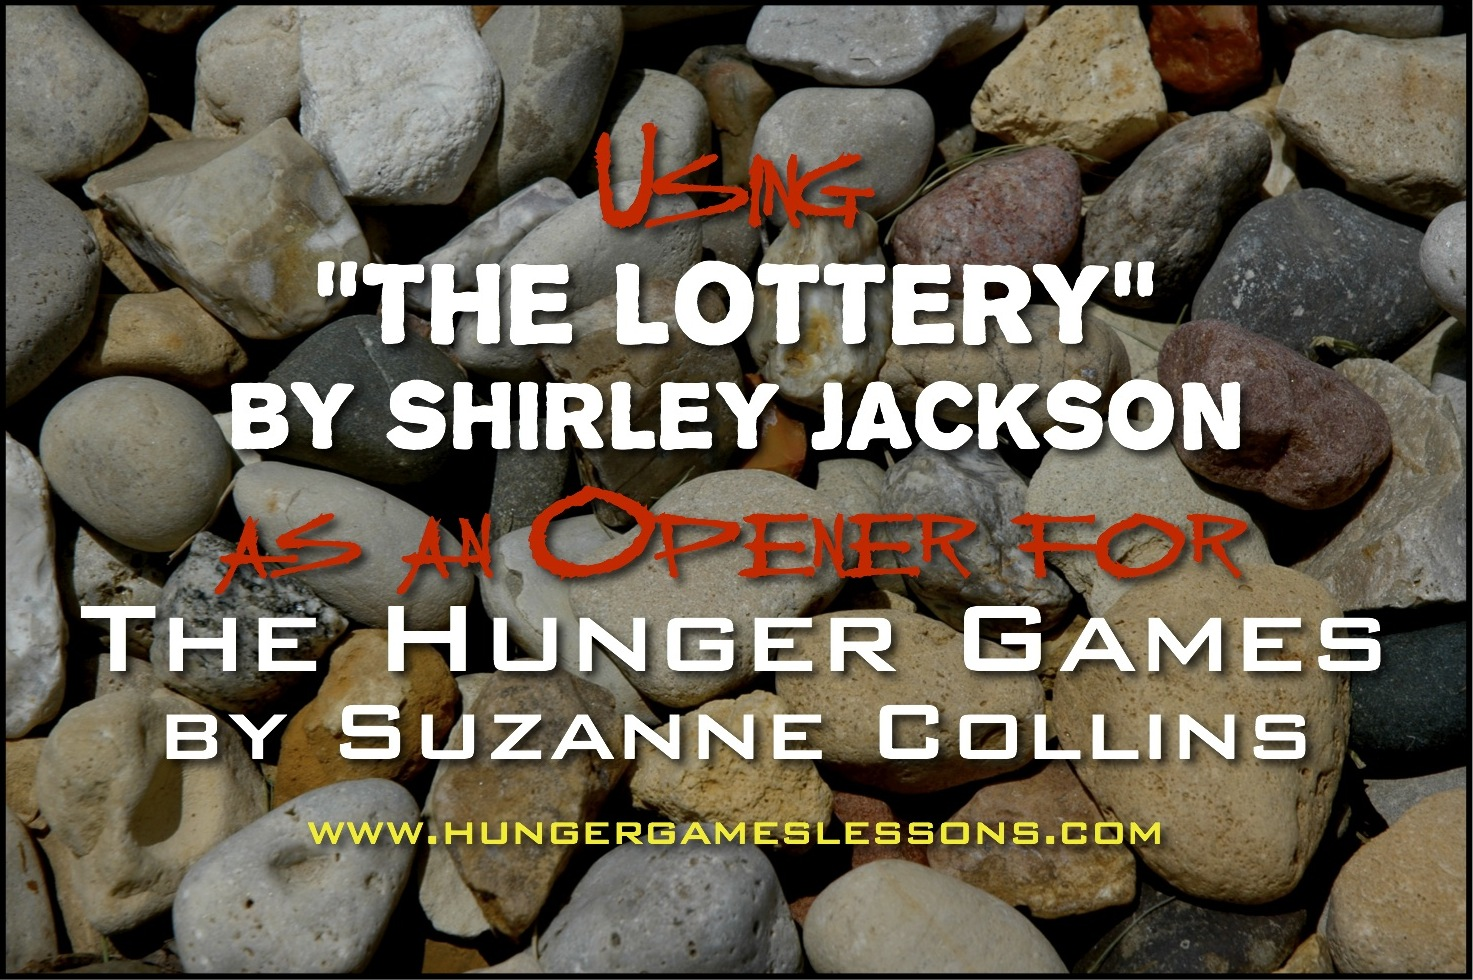 hunger games lessons introducing the the hunger games the using the lottery to open for the hunger games reaping on com